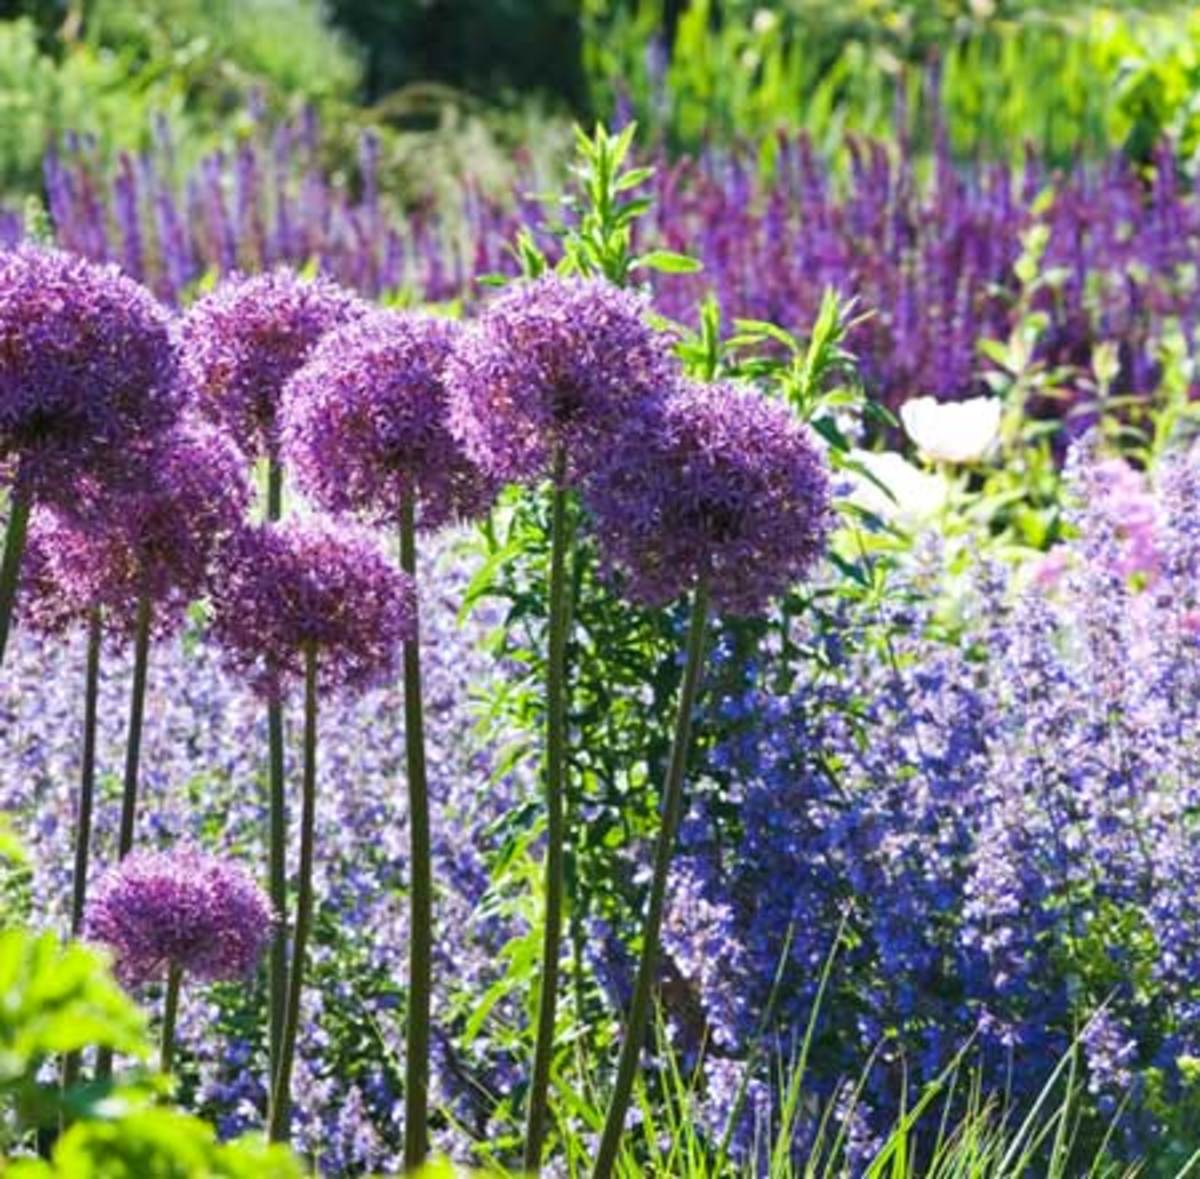 Spheres of allium mingle with 'Walker's Low' catmint while salvia blooms farther back.